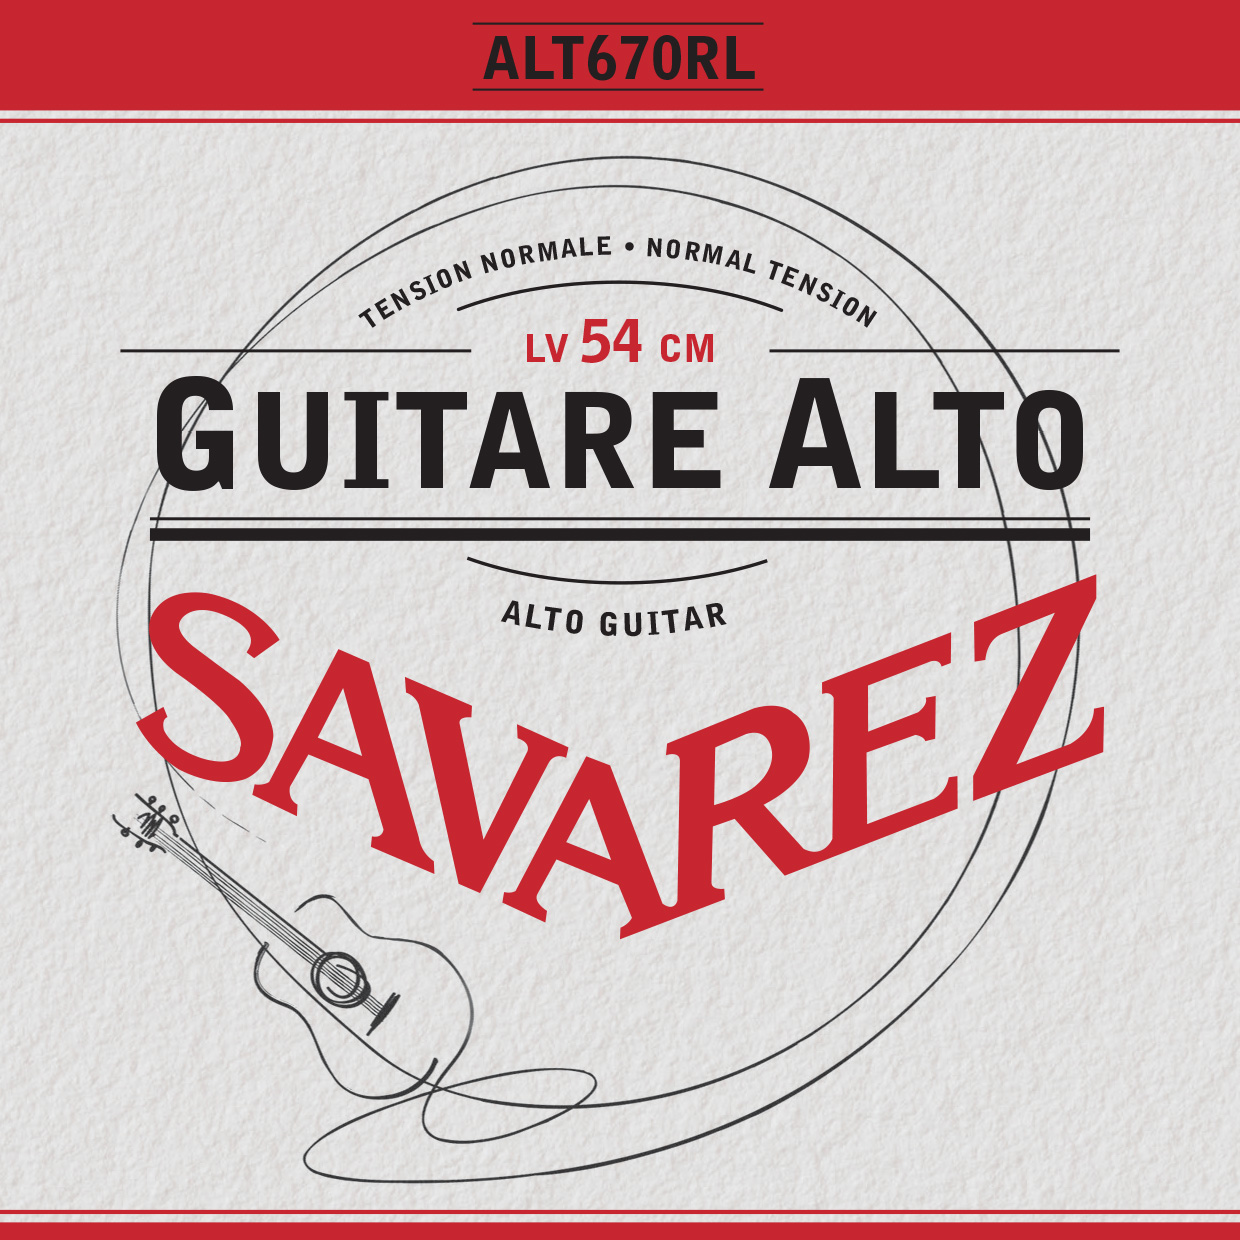 ALTO GUITAR NORMAL TENSION ALT670RL